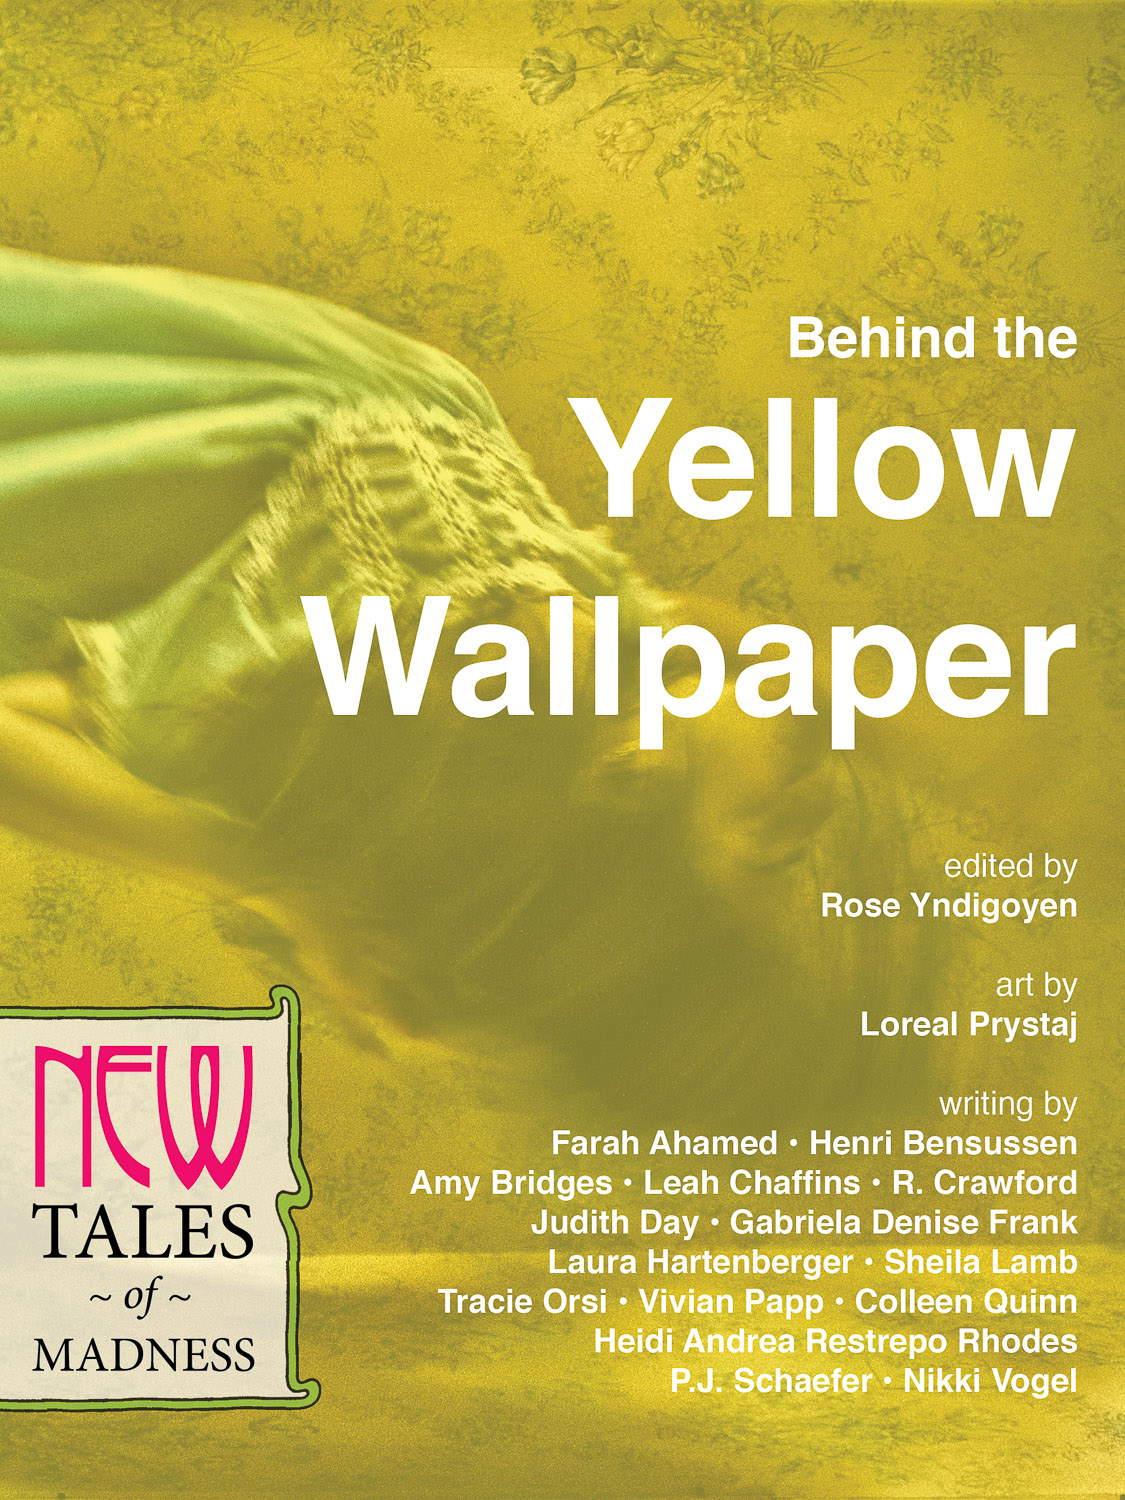 the yellow wallpaper introduction paragraph  wallpapersafari the yellow wallpaper isolation essay student clue your guide to x